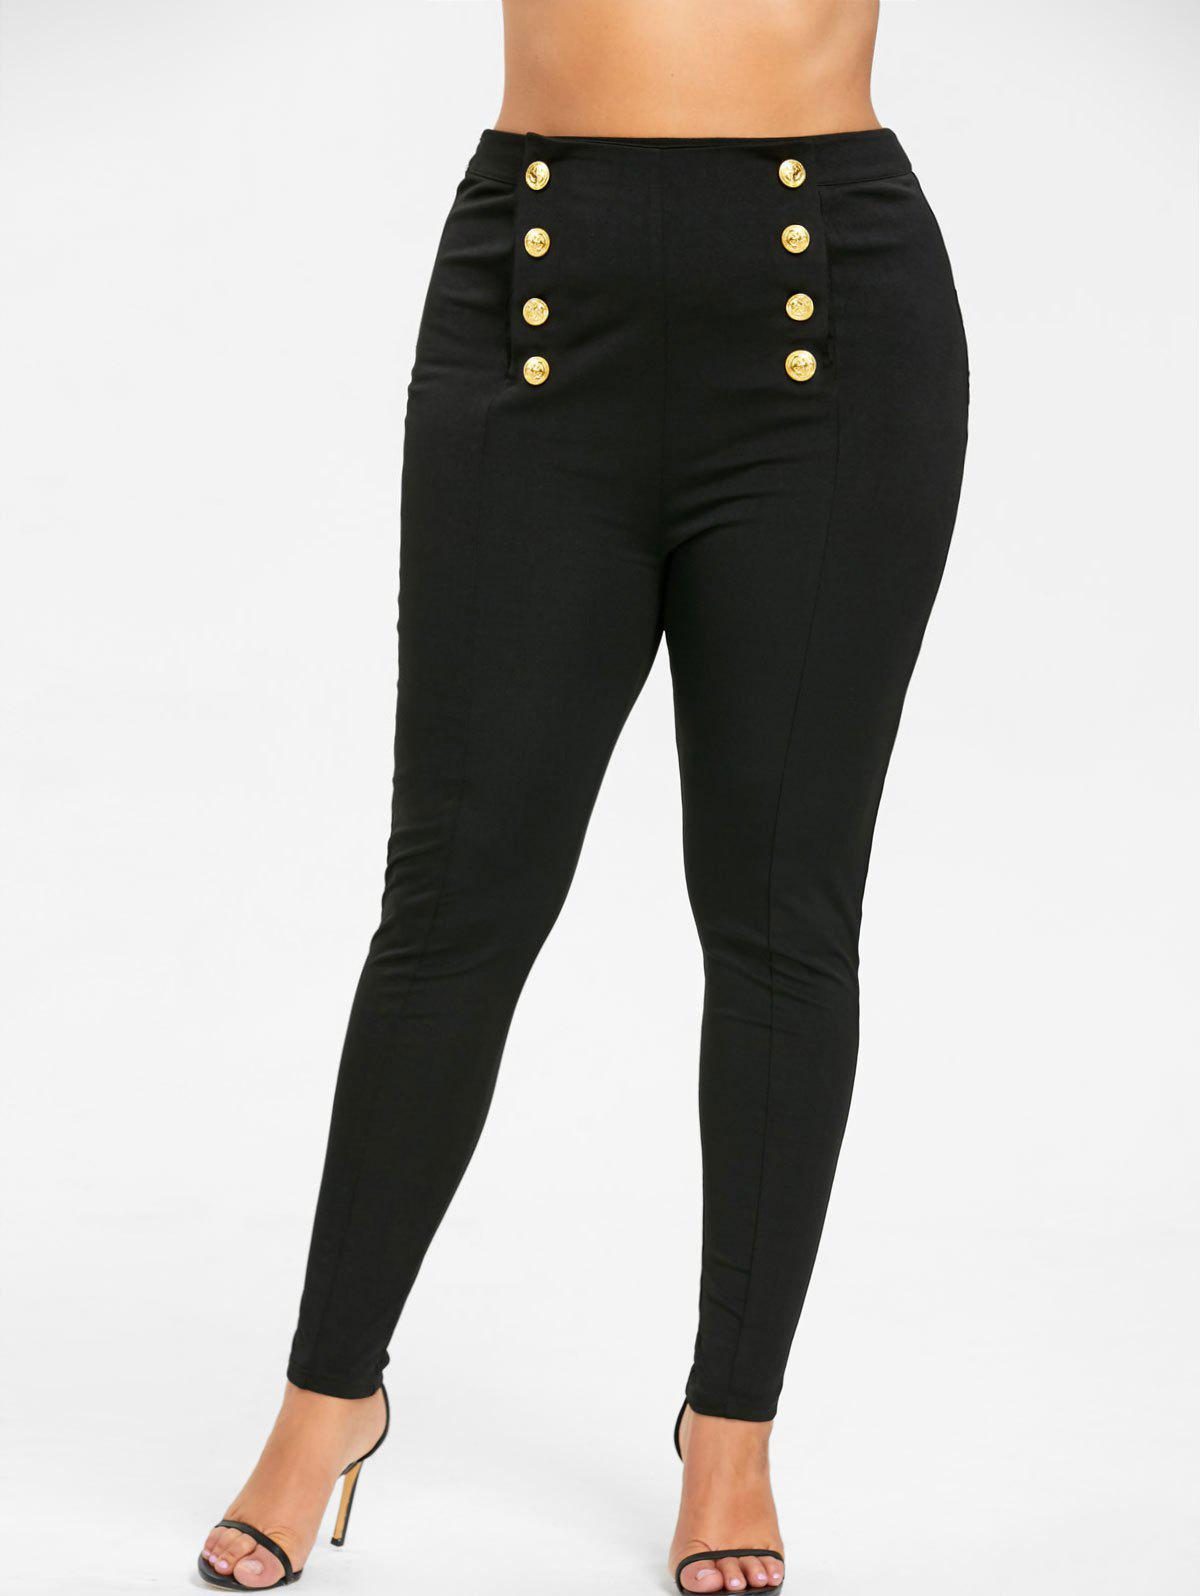 Plus Size Double Breasted Tight PantsWOMEN<br><br>Size: 3XL; Color: BLACK; Style: Fashion; Length: Normal; Material: Polyester,Spandex; Fit Type: Skinny; Waist Type: Mid; Closure Type: Button Fly; Pattern Type: Solid; Embellishment: Button; Pant Style: Pencil Pants; Weight: 0.3300kg; Package Contents: 1 x Pants;